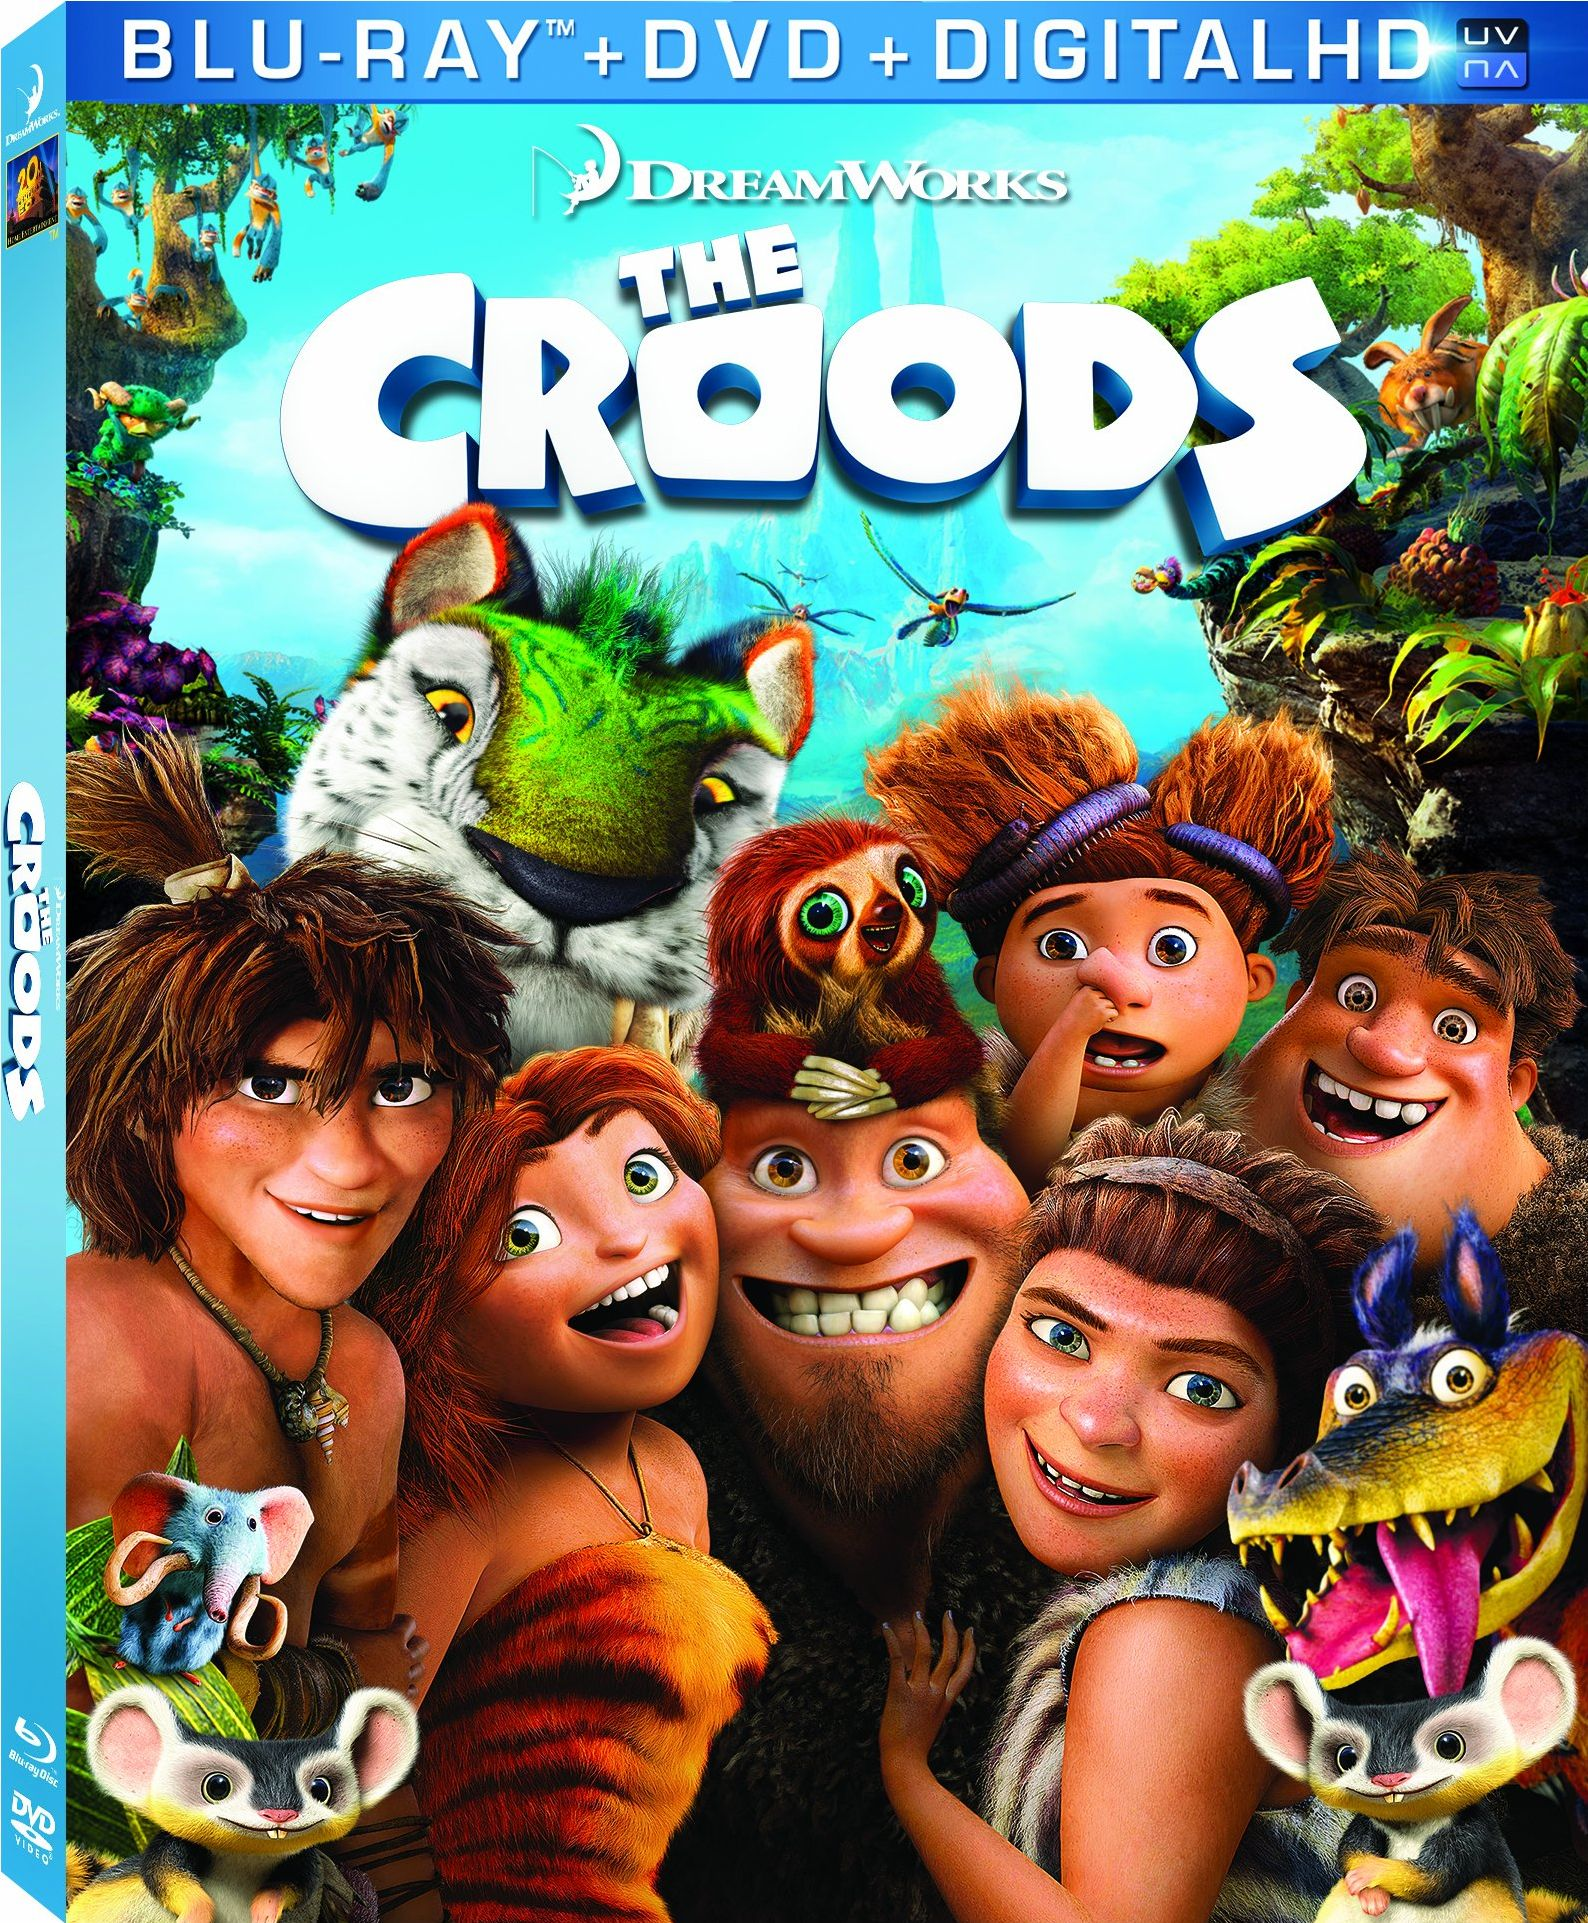 the croods on blu-ray and dvd combo pack |